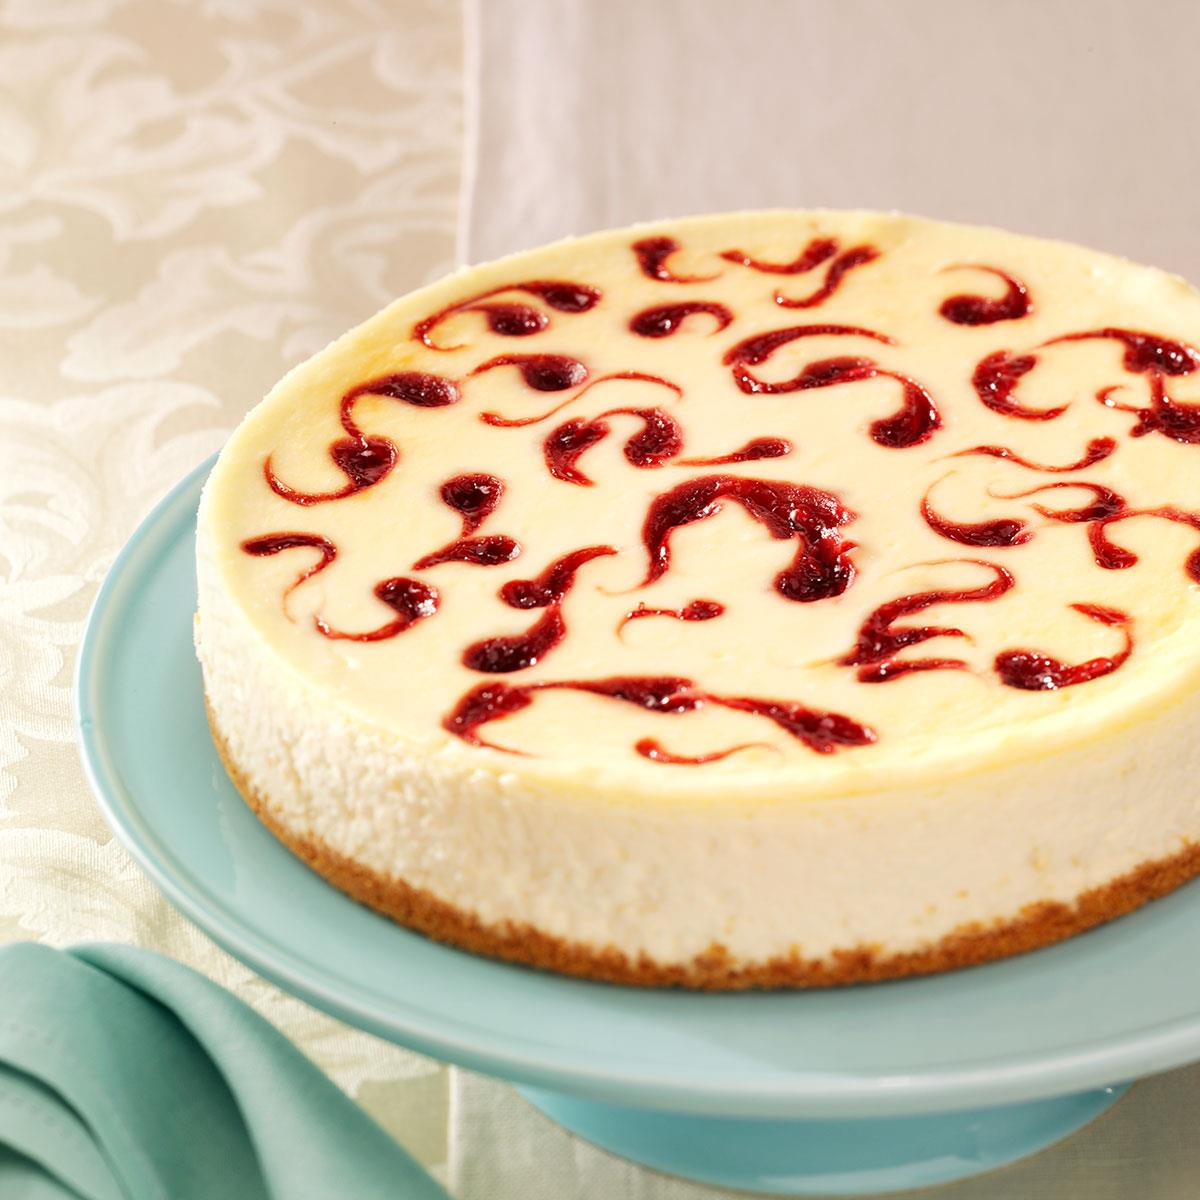 White Chocolate Raspberry Cheesecake Recipe How To Make It Taste Of Home